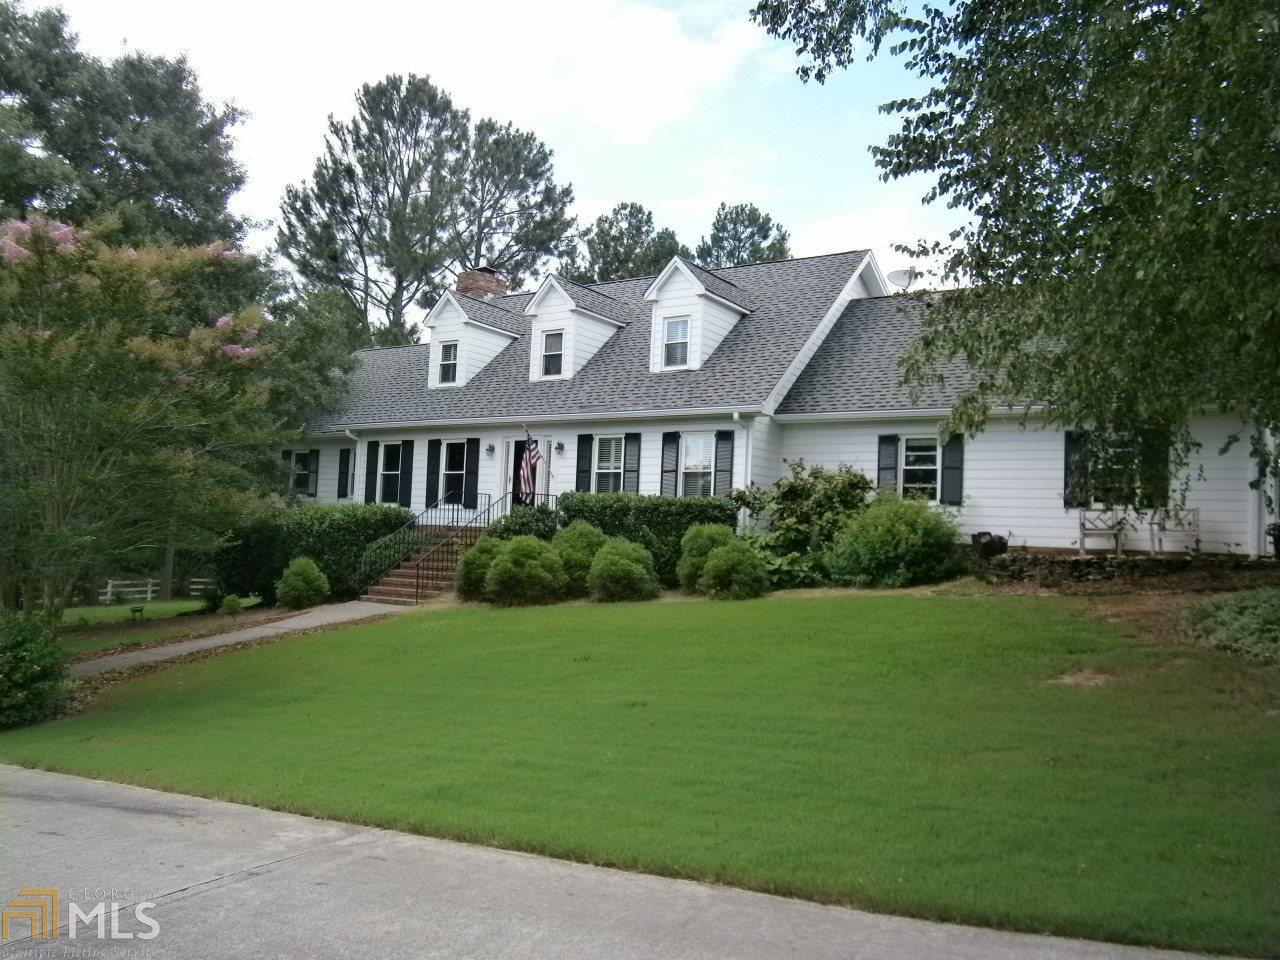 5000 Bryant Dr Snellville Ga Mls 8222580 Better Homes And Gardens Real Estate